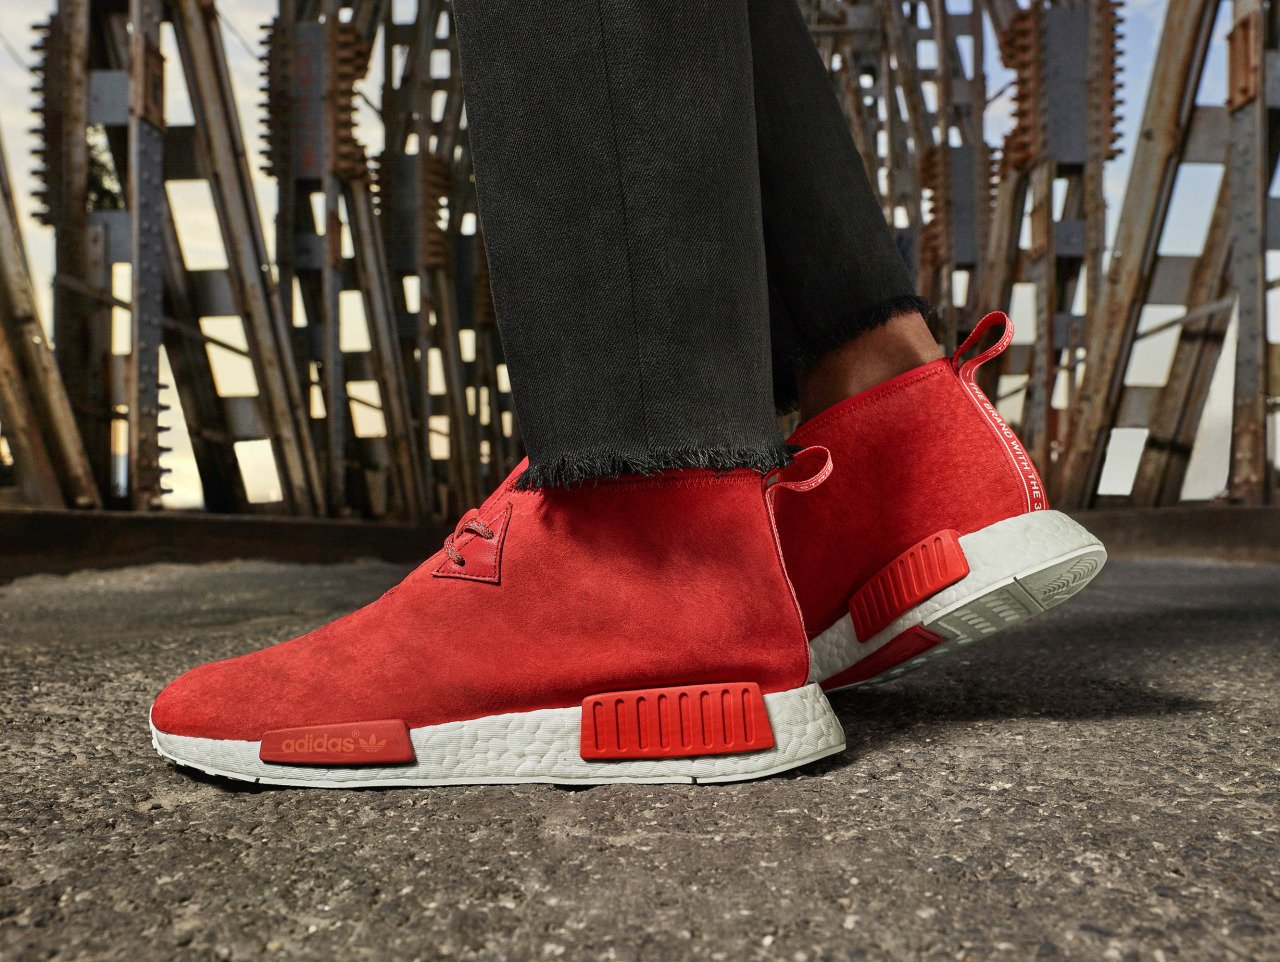 adidas originals nmd (5)